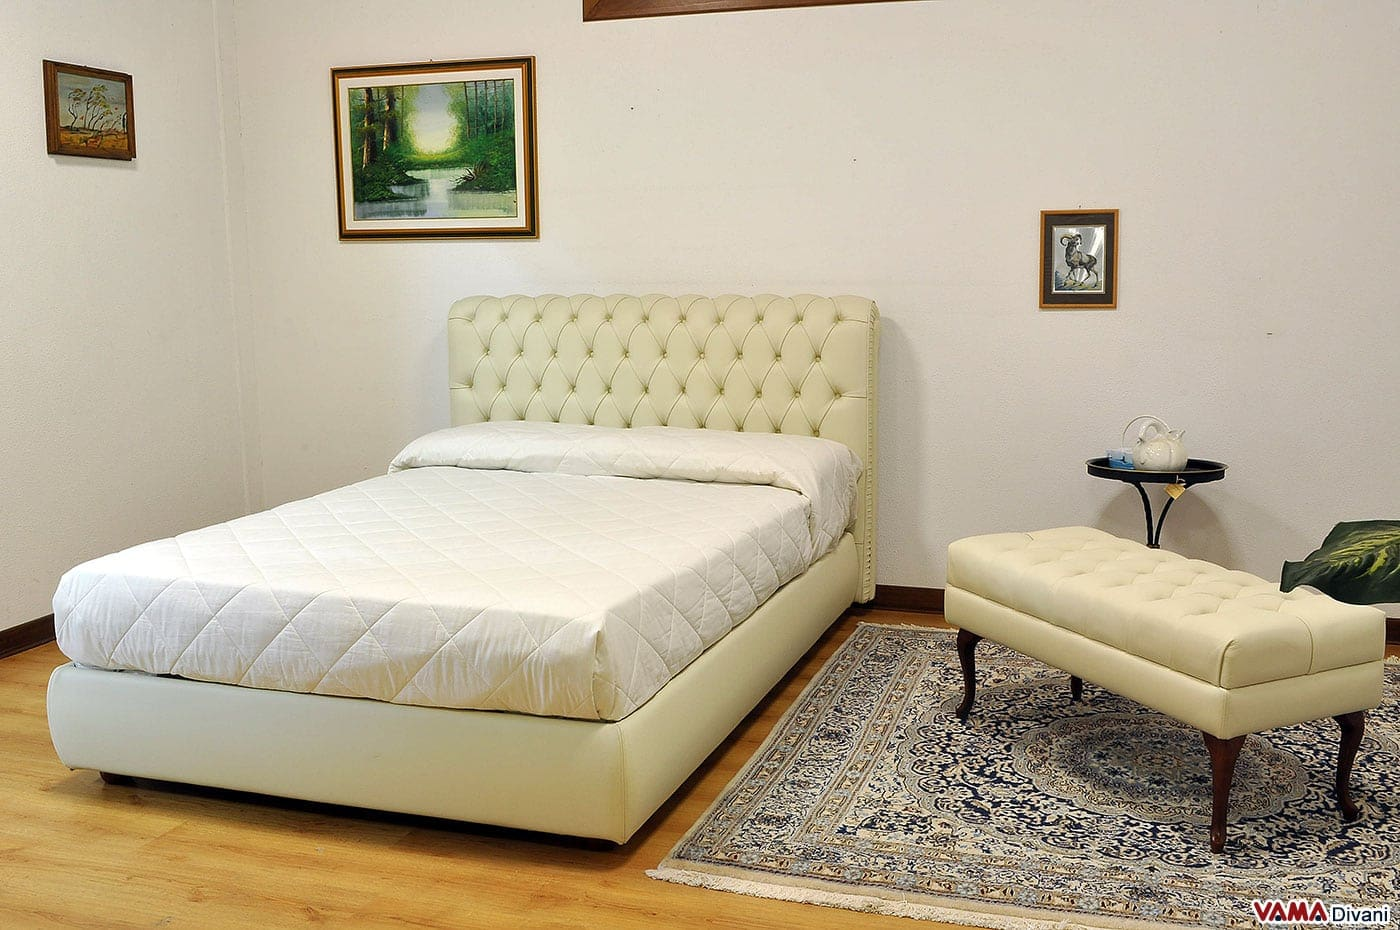 Letto francese hotel europeo u flowers french bed room bed cm wide camera con with letto - Camera singola con letto alla francese ...